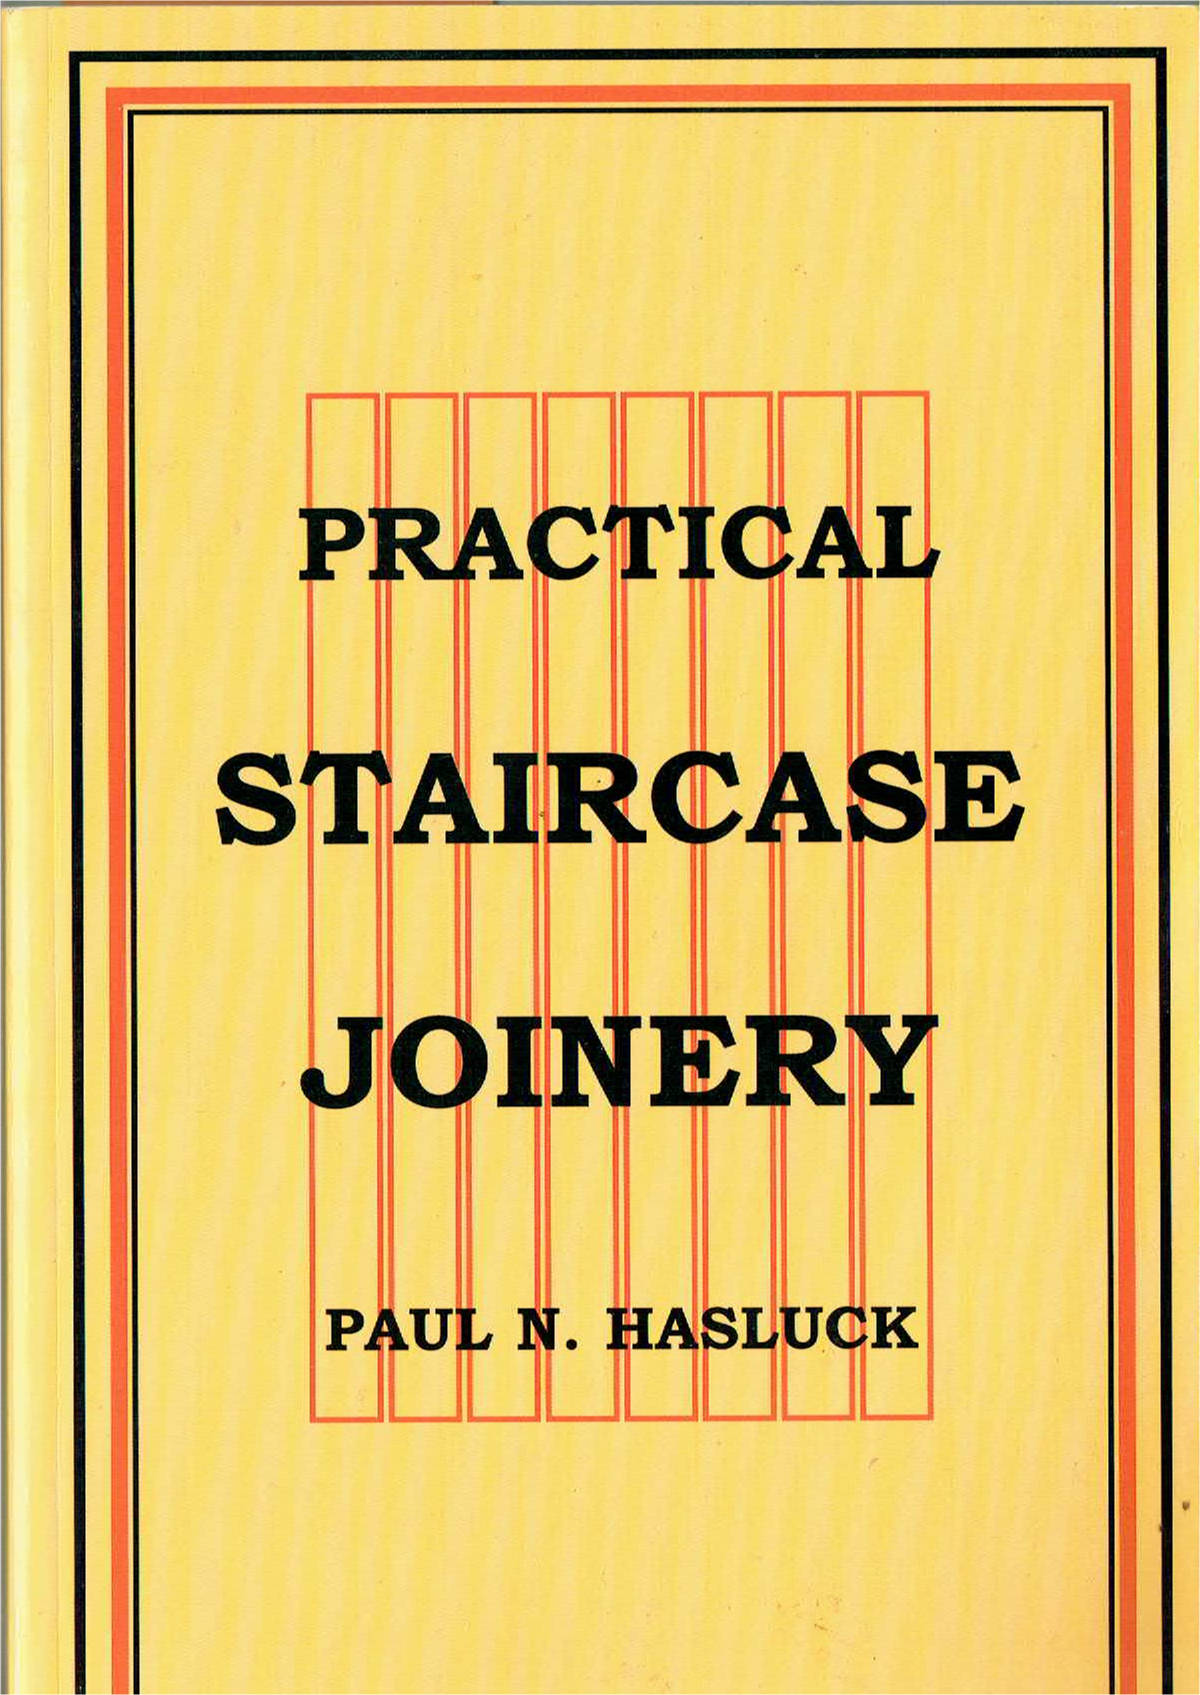 Practical staircase joinery.